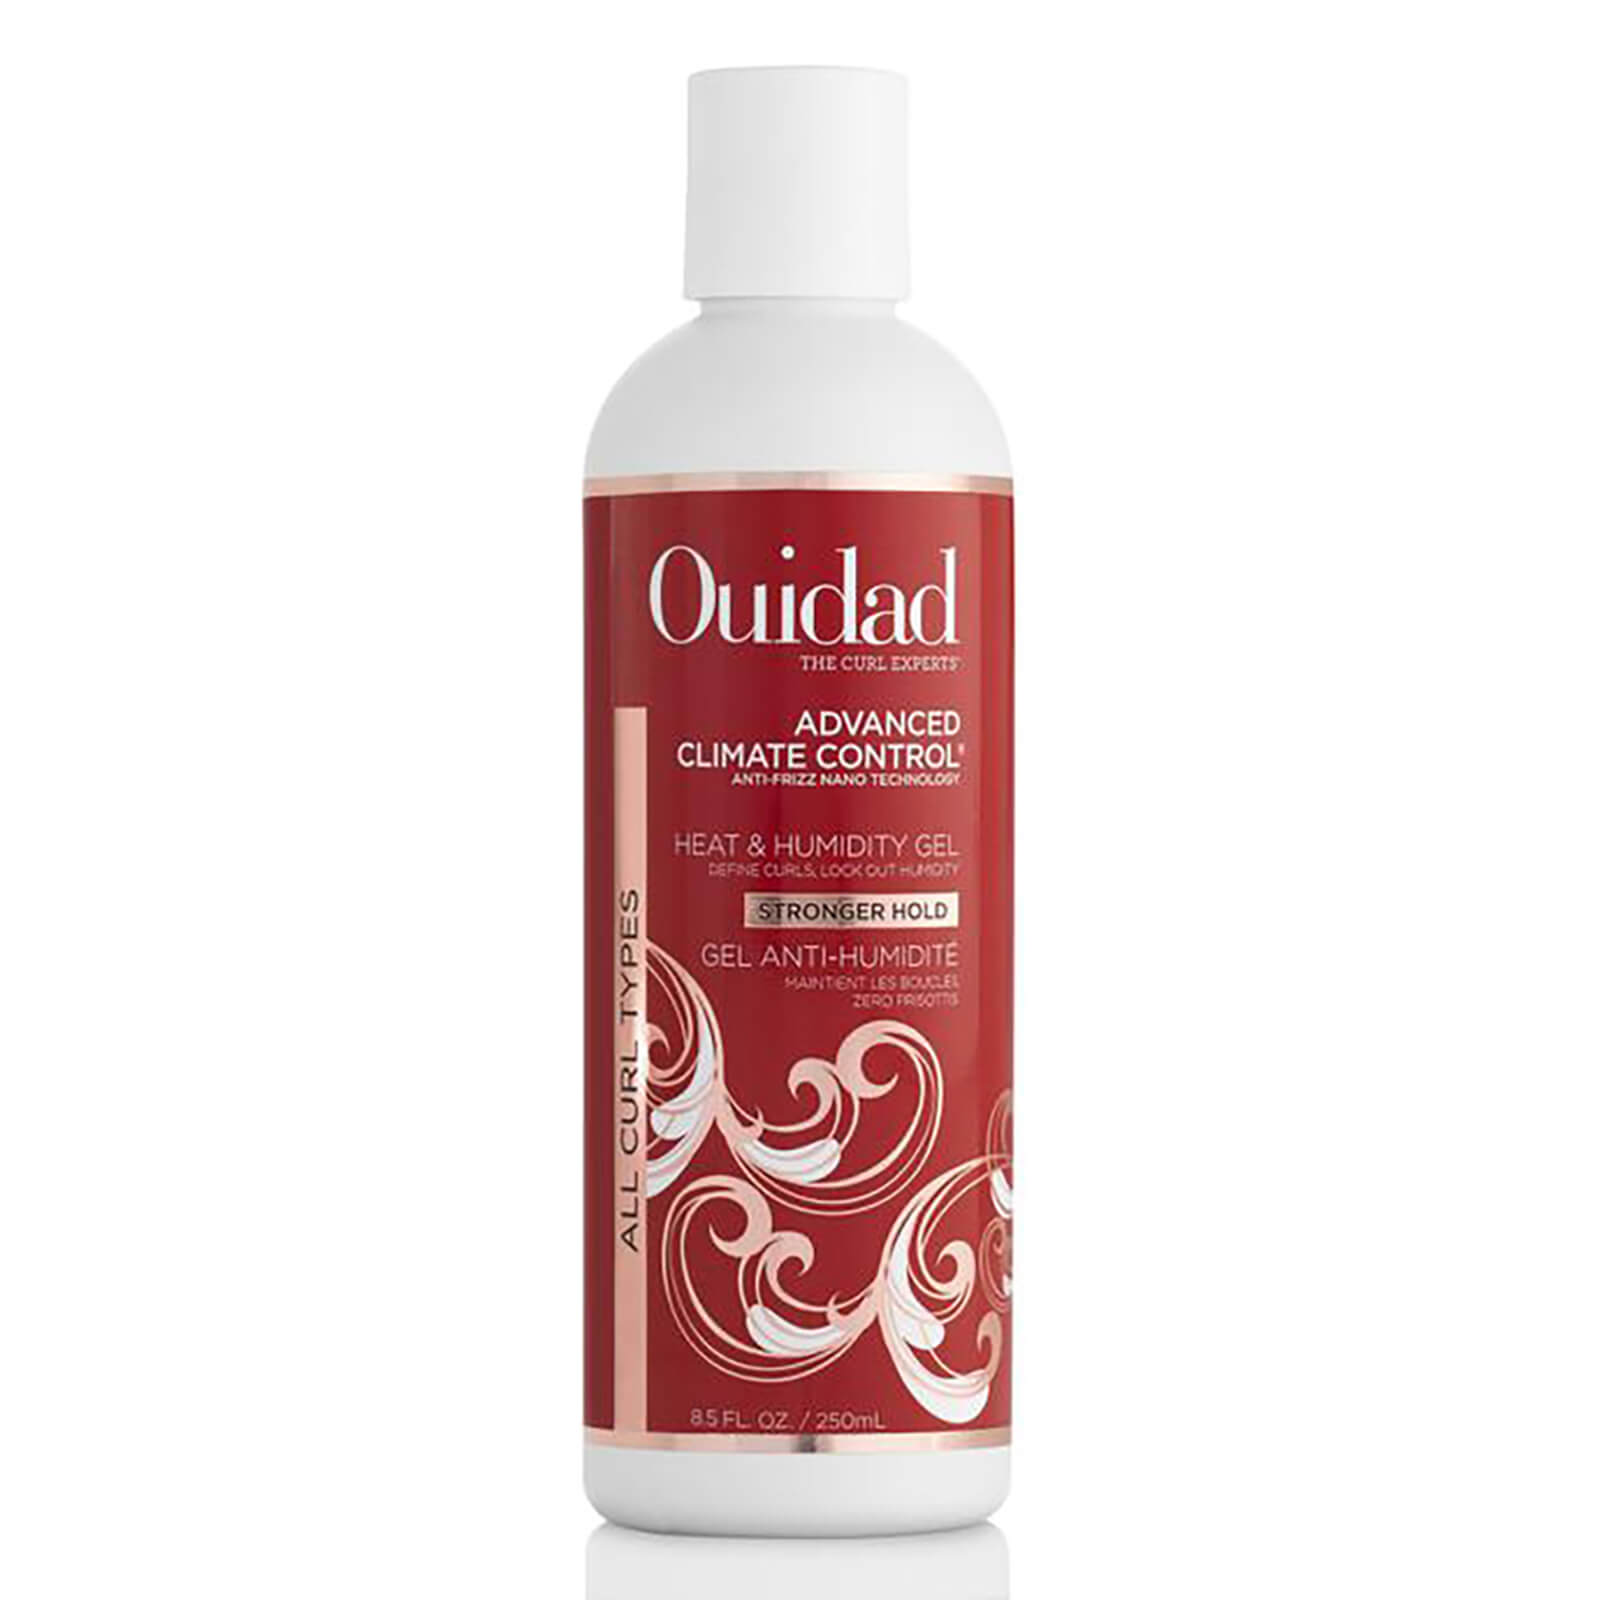 Ouidad Advanced Climate Control Heat and Humidity Gel - Stronger Hold